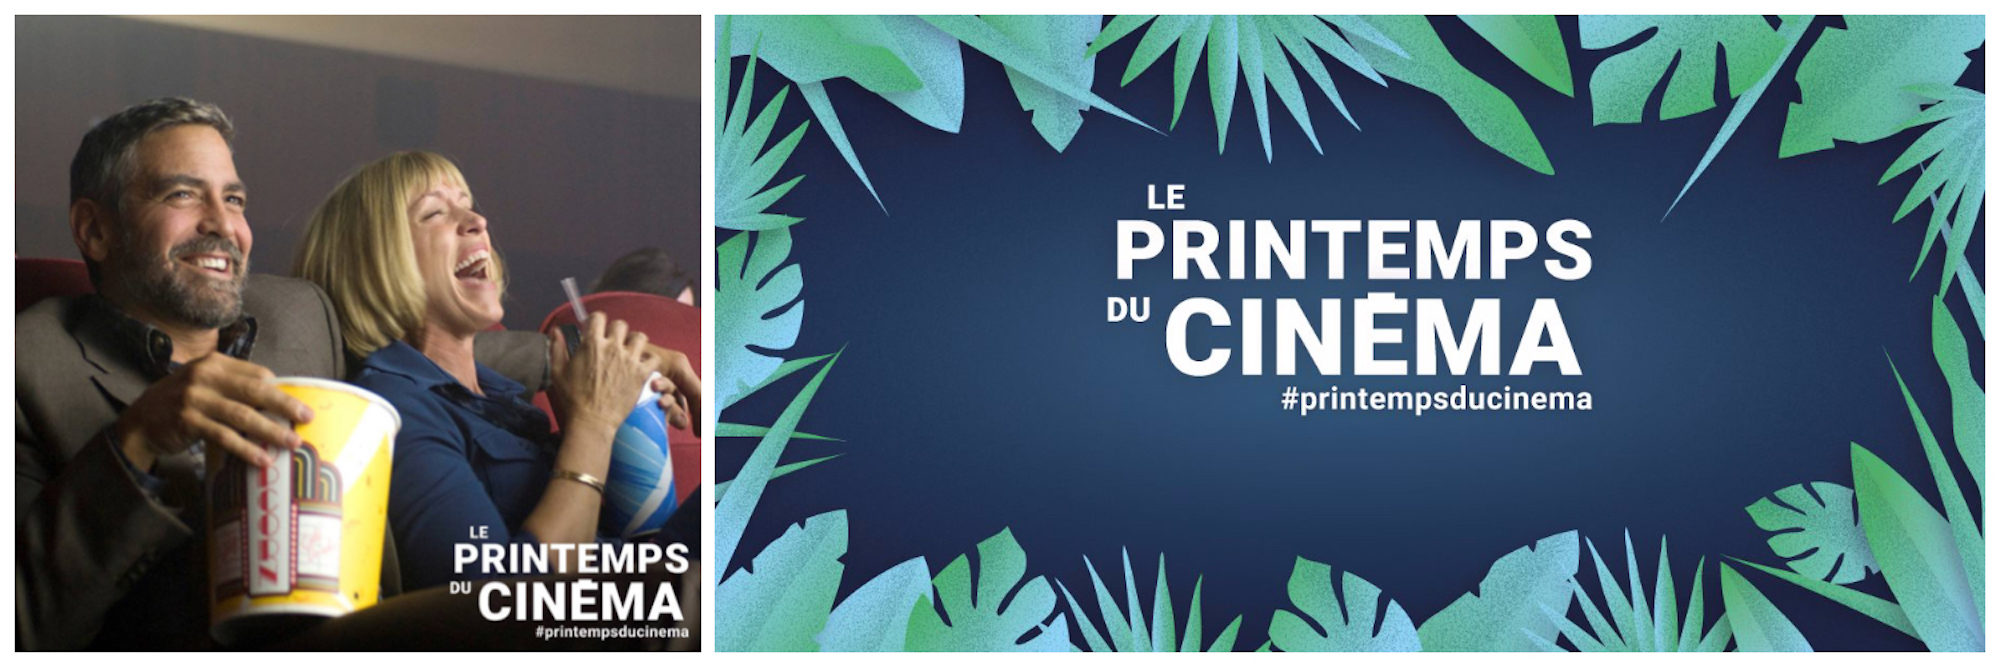 Posters for the Printemps du Cinéma film festival in Paris in March.